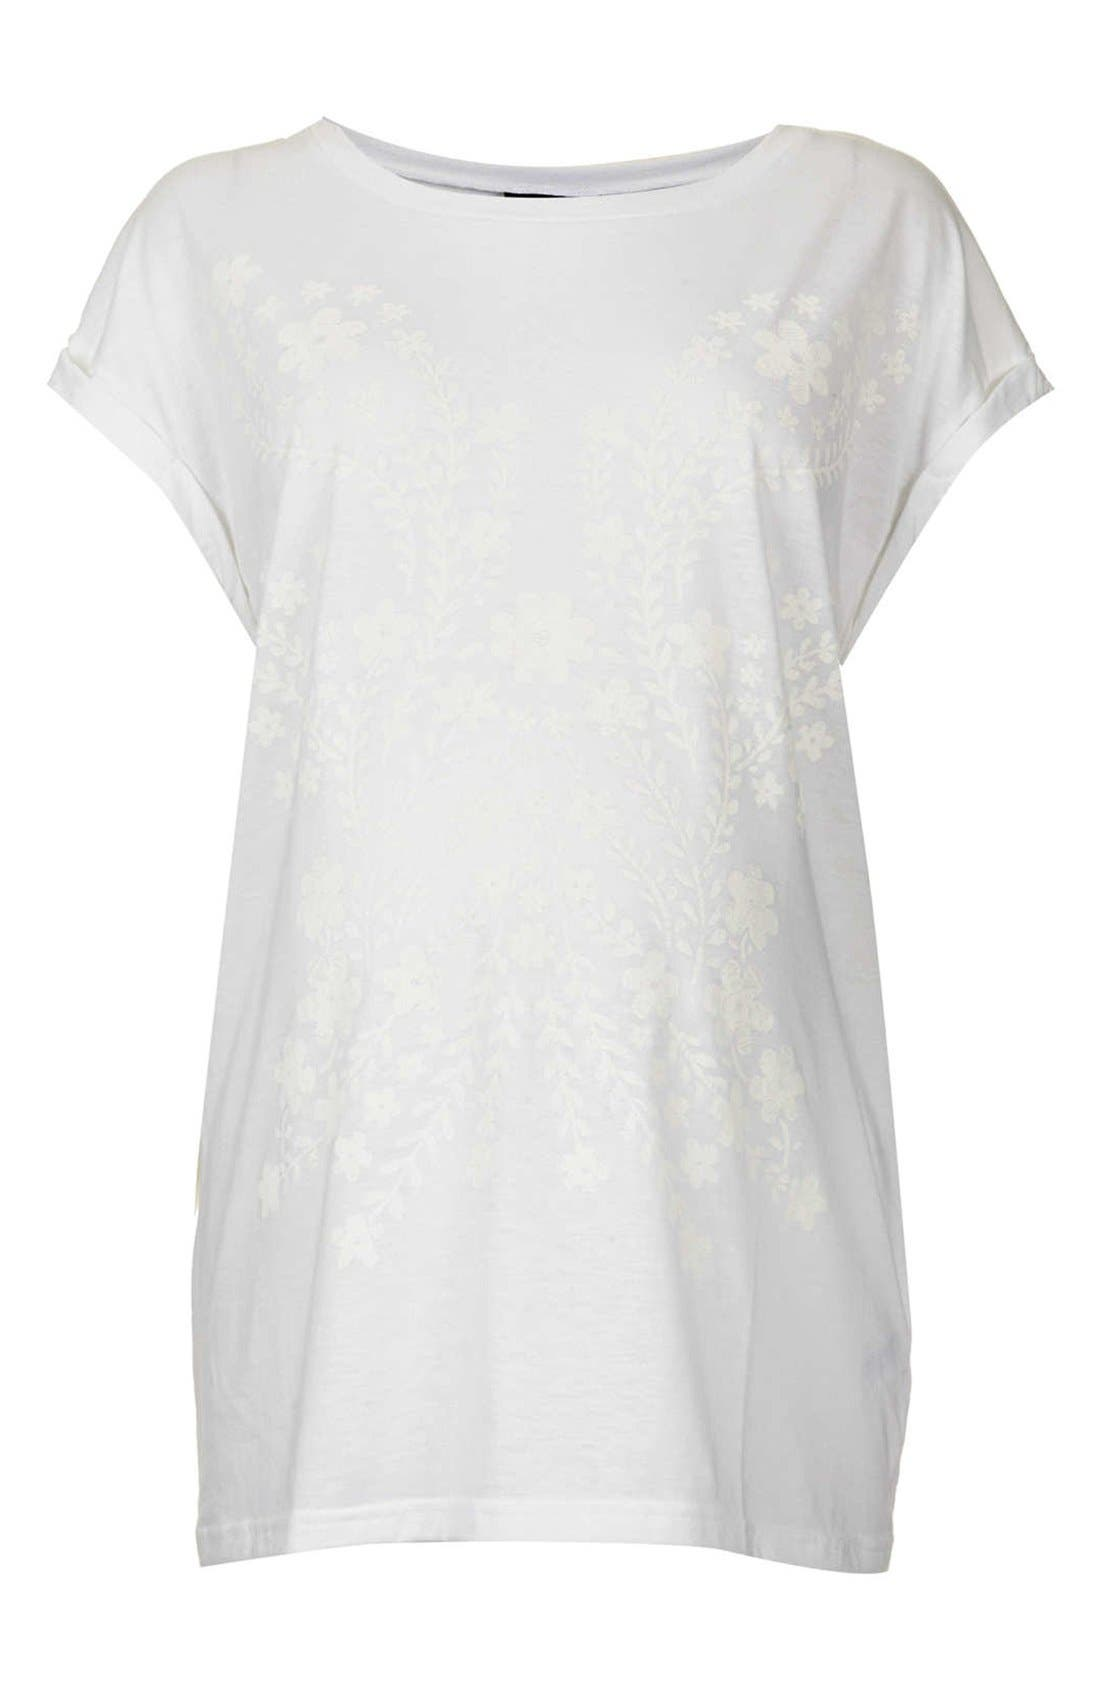 Alternate Image 1 Selected - Topshop Floral Placement Maternity Tee